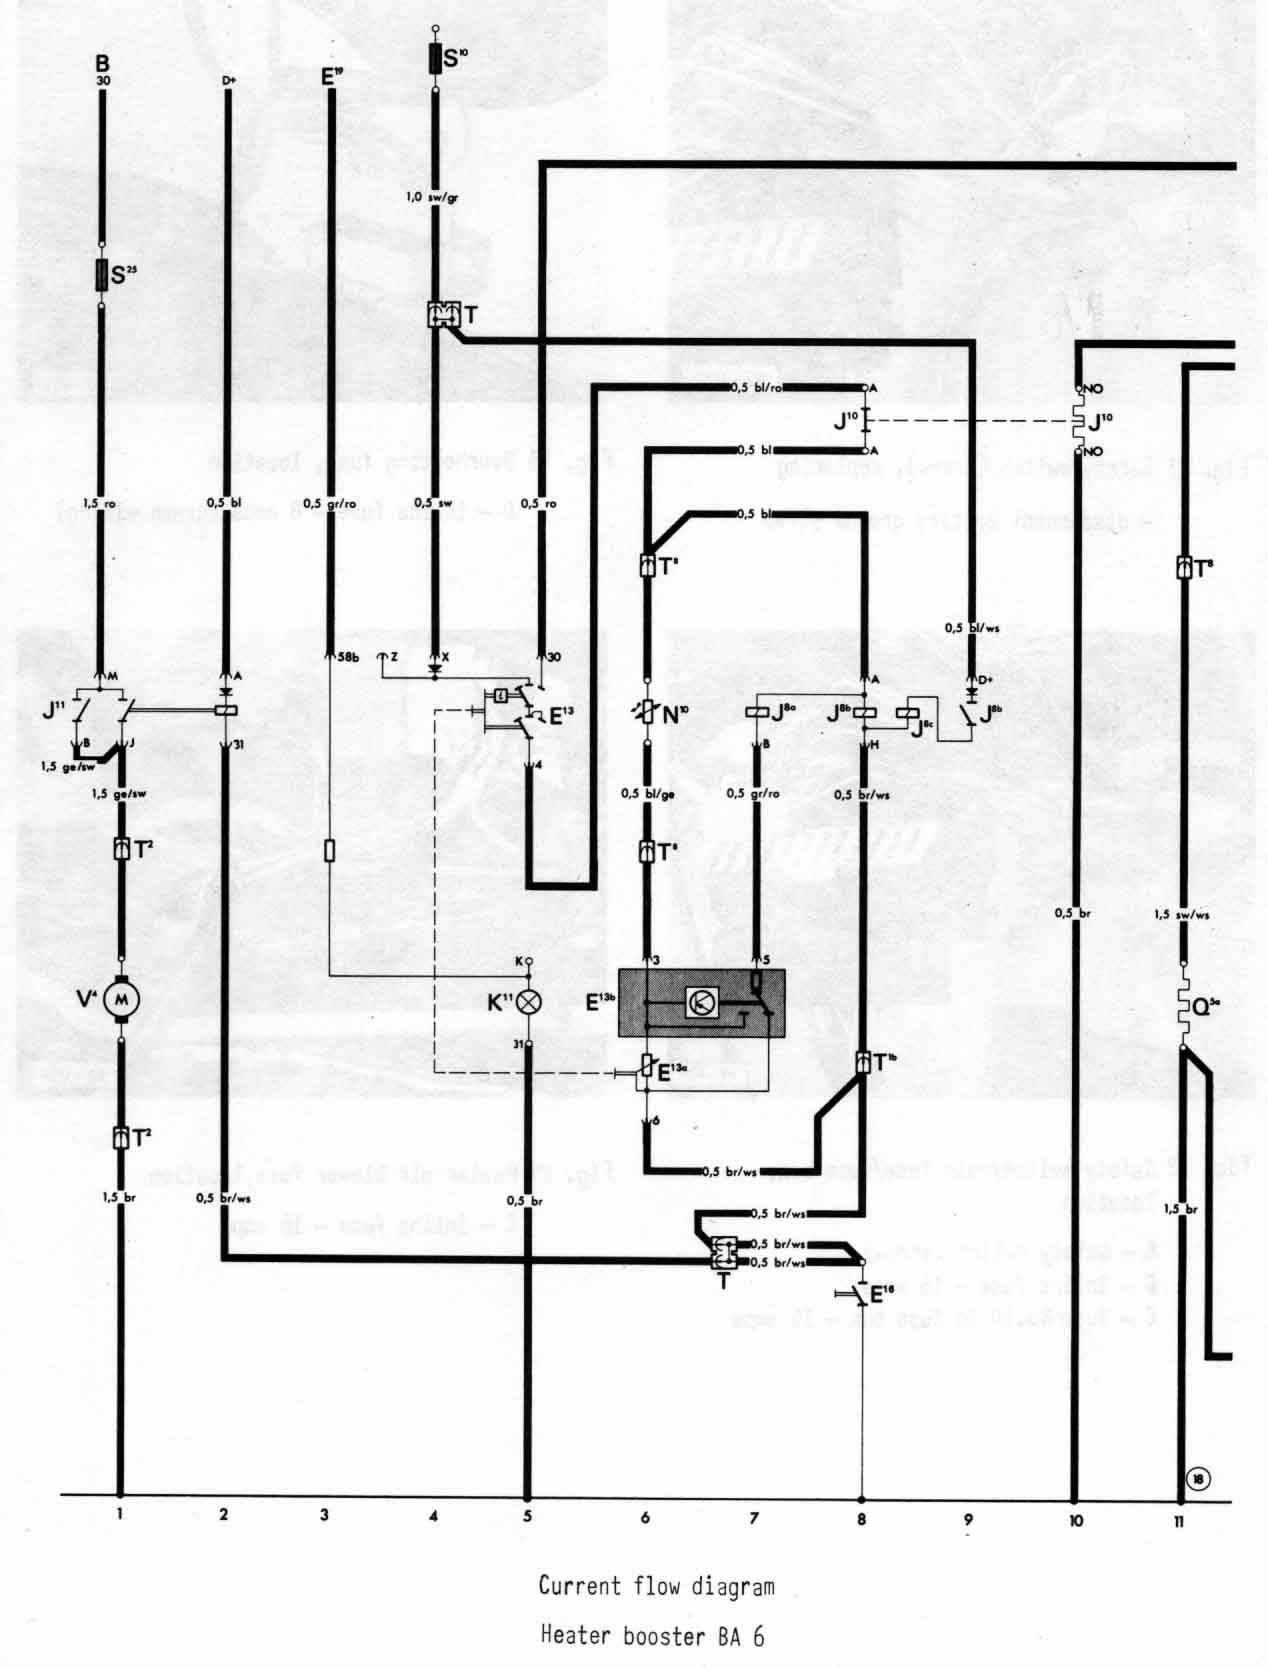 Sincronizacion De Motor Vw moreover B Usversion furthermore Vwc Kit in addition Wire Tl in addition E. on vw type 3 wiring diagram